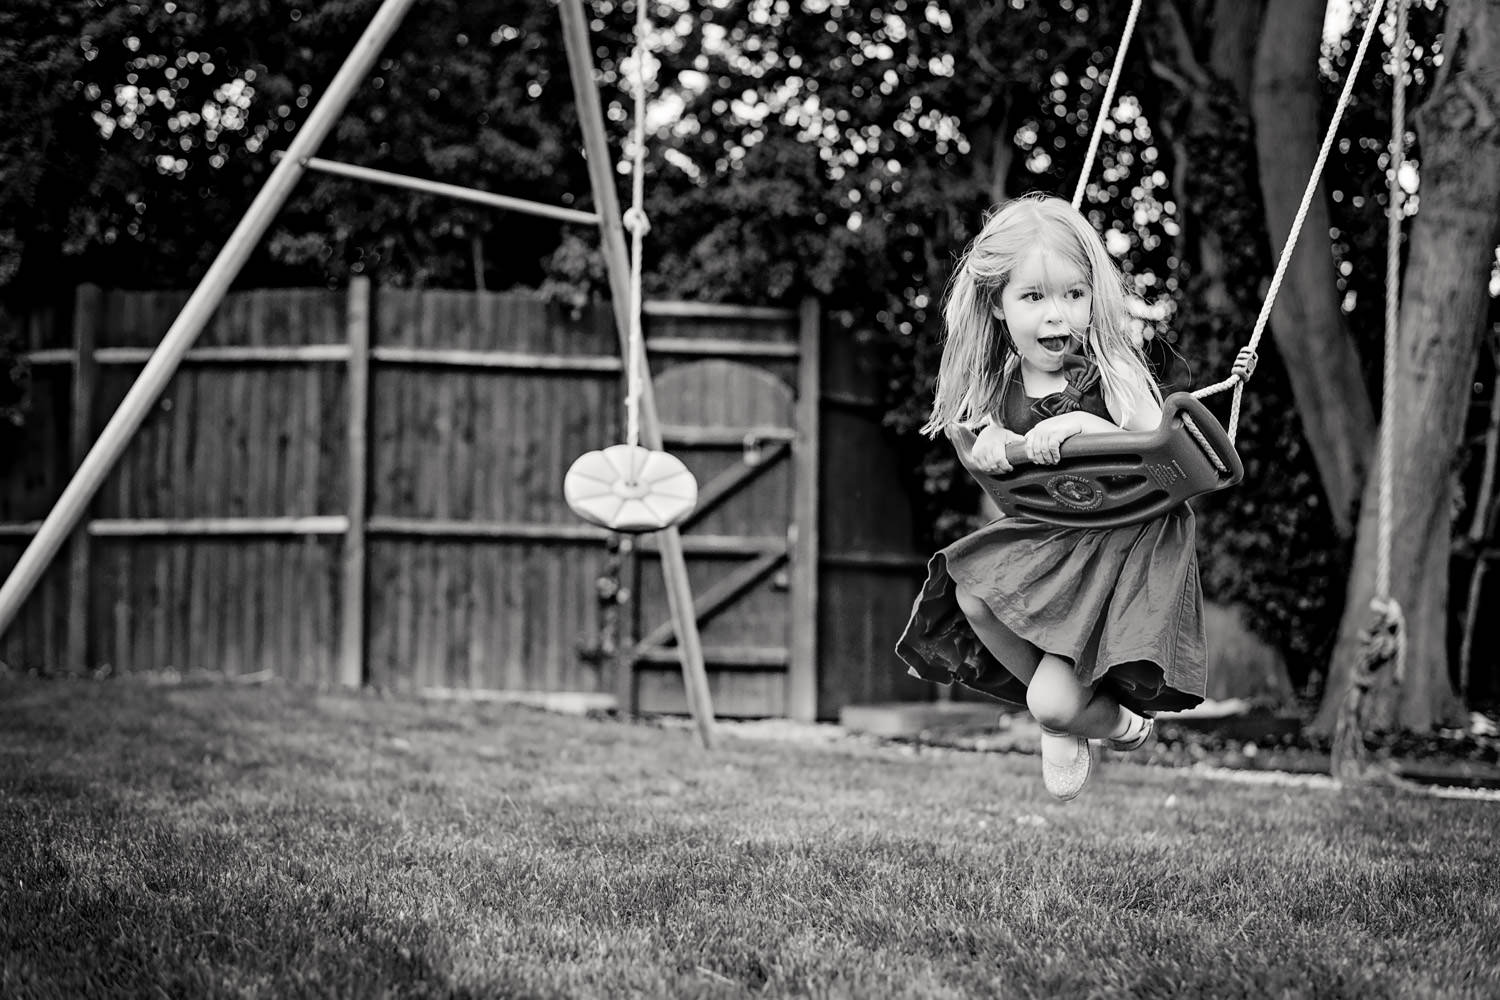 Girl leaning over a swing on her tummy and lifting her legs as she swings